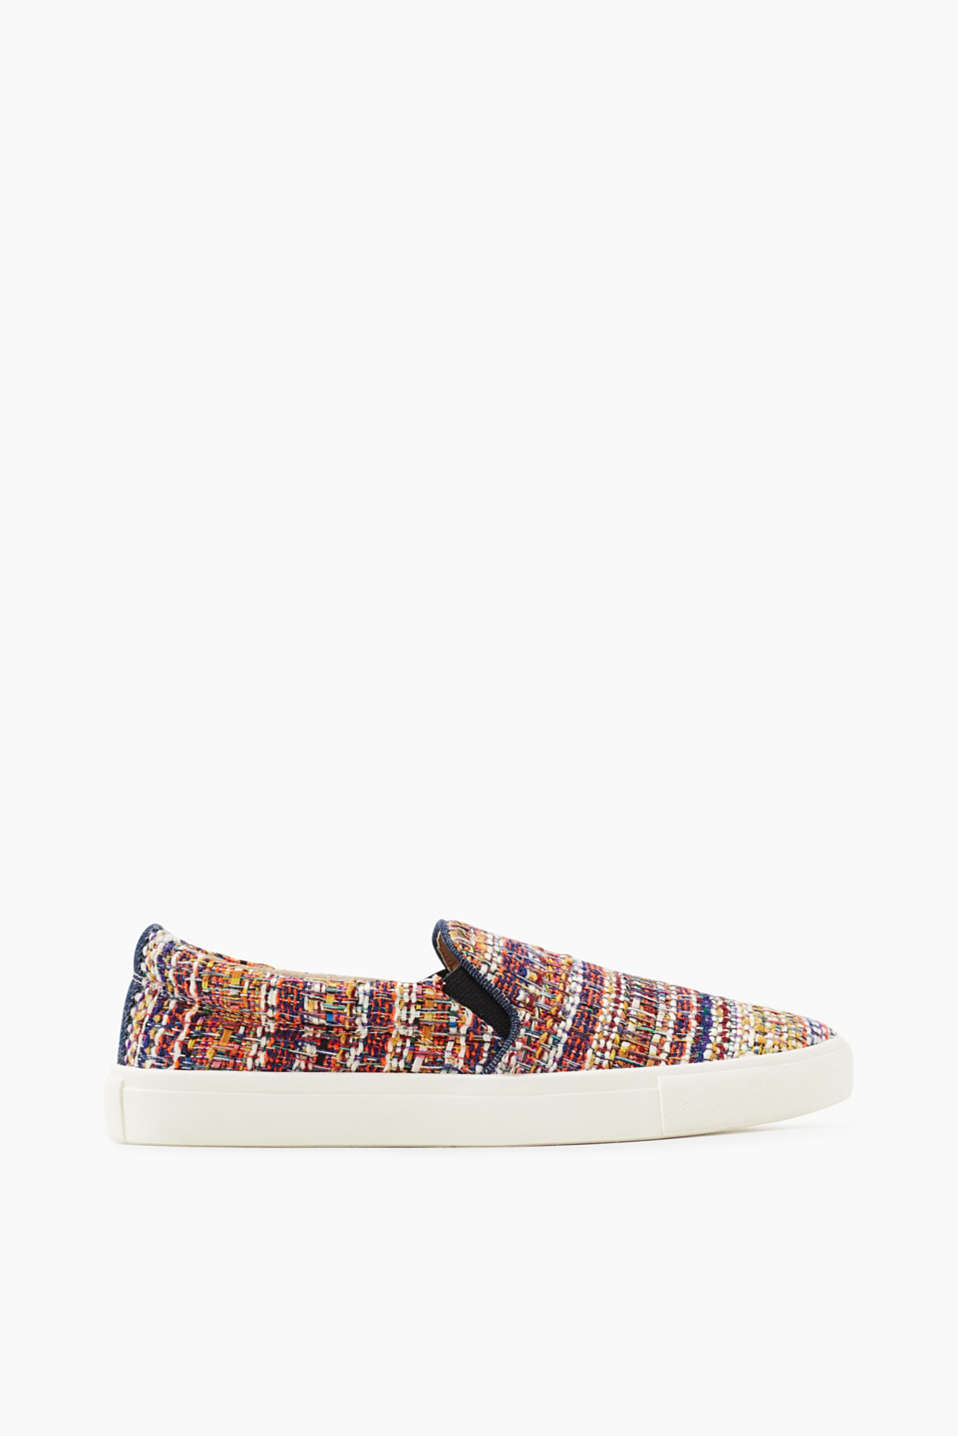 Mit Gummisohle: Slip On-Sneaker in farbenfroher Bouclé-Optik